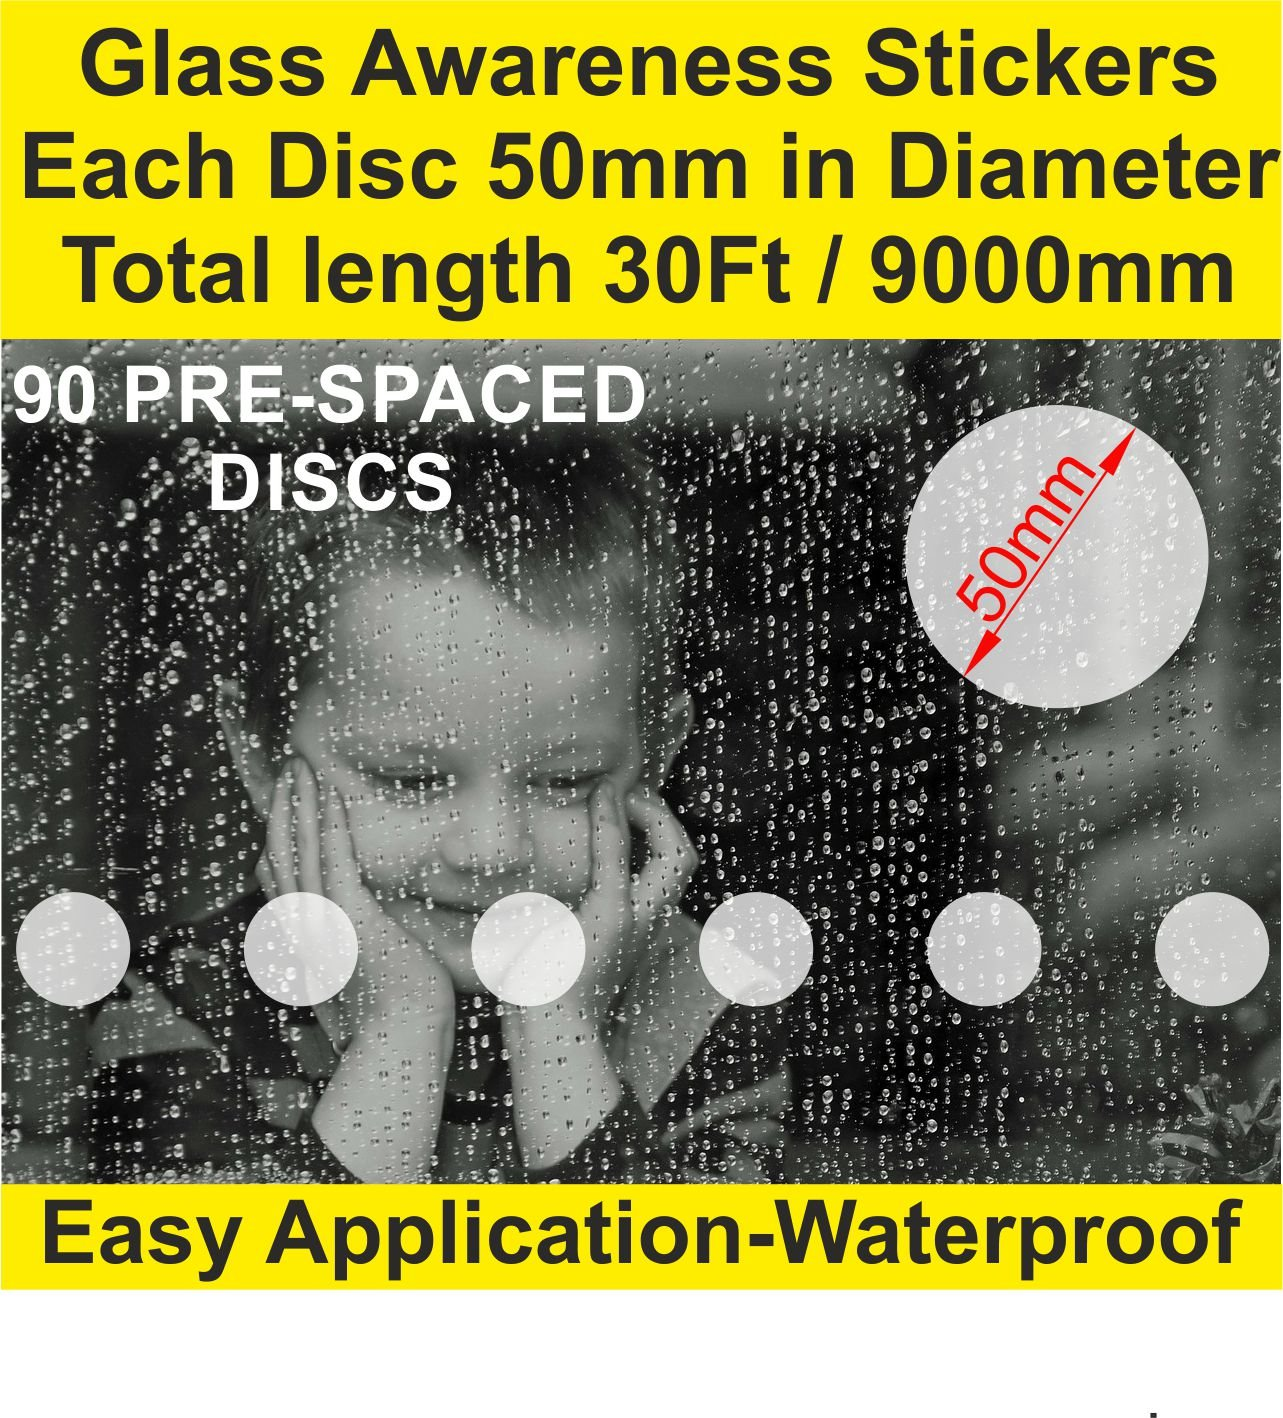 Pack of 90 Glass Awareness Circles Self Adhesive Safety Stickers Manifestation Office Front Shop Home Total Length 50mm X 9000mm/30Ft SmartSignsSolutions